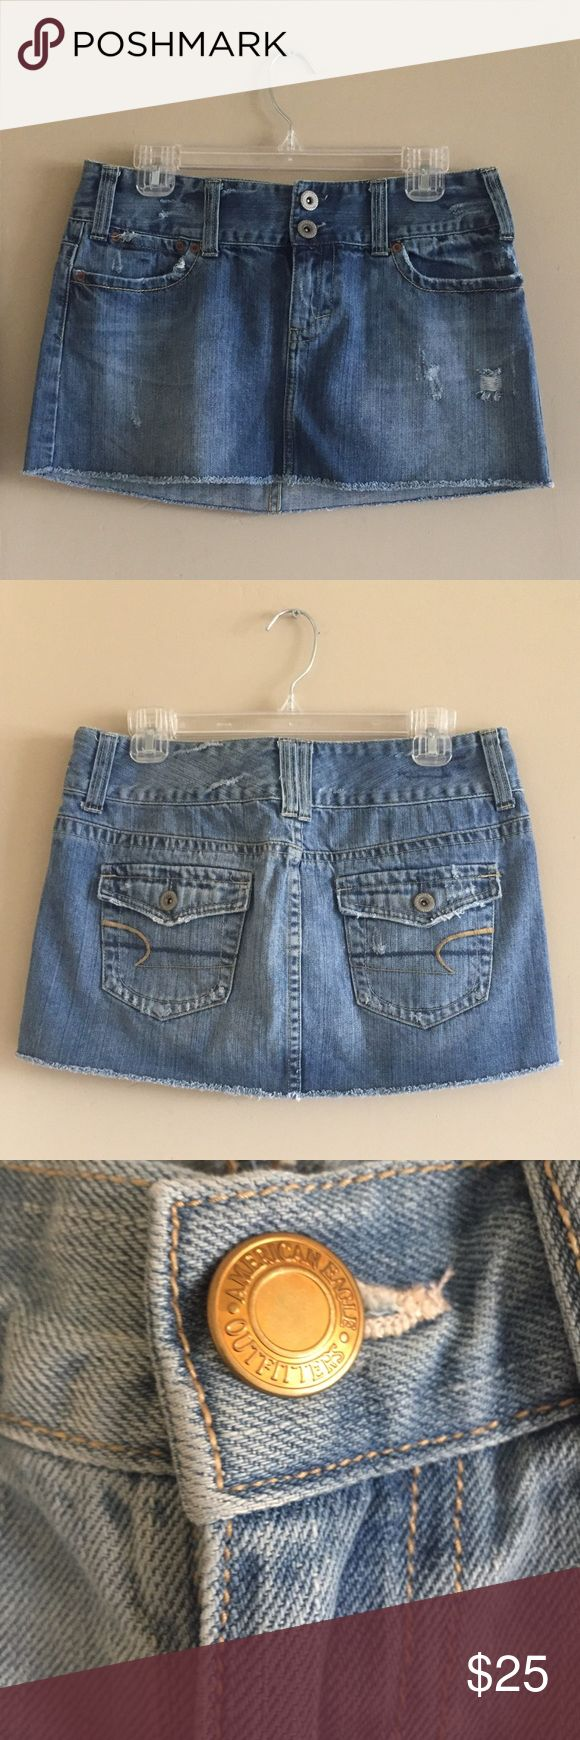 American Eagle Outfitters Denim Mini Skirt Size 10 Very gently worn, perfect condition!  Size 10  5 pocket styling  Belt loops  Two button fly and zip closure  Perfect for spring break, festival season, Coachella or Stagecoach! American Eagle Outfitters Skirts Mini